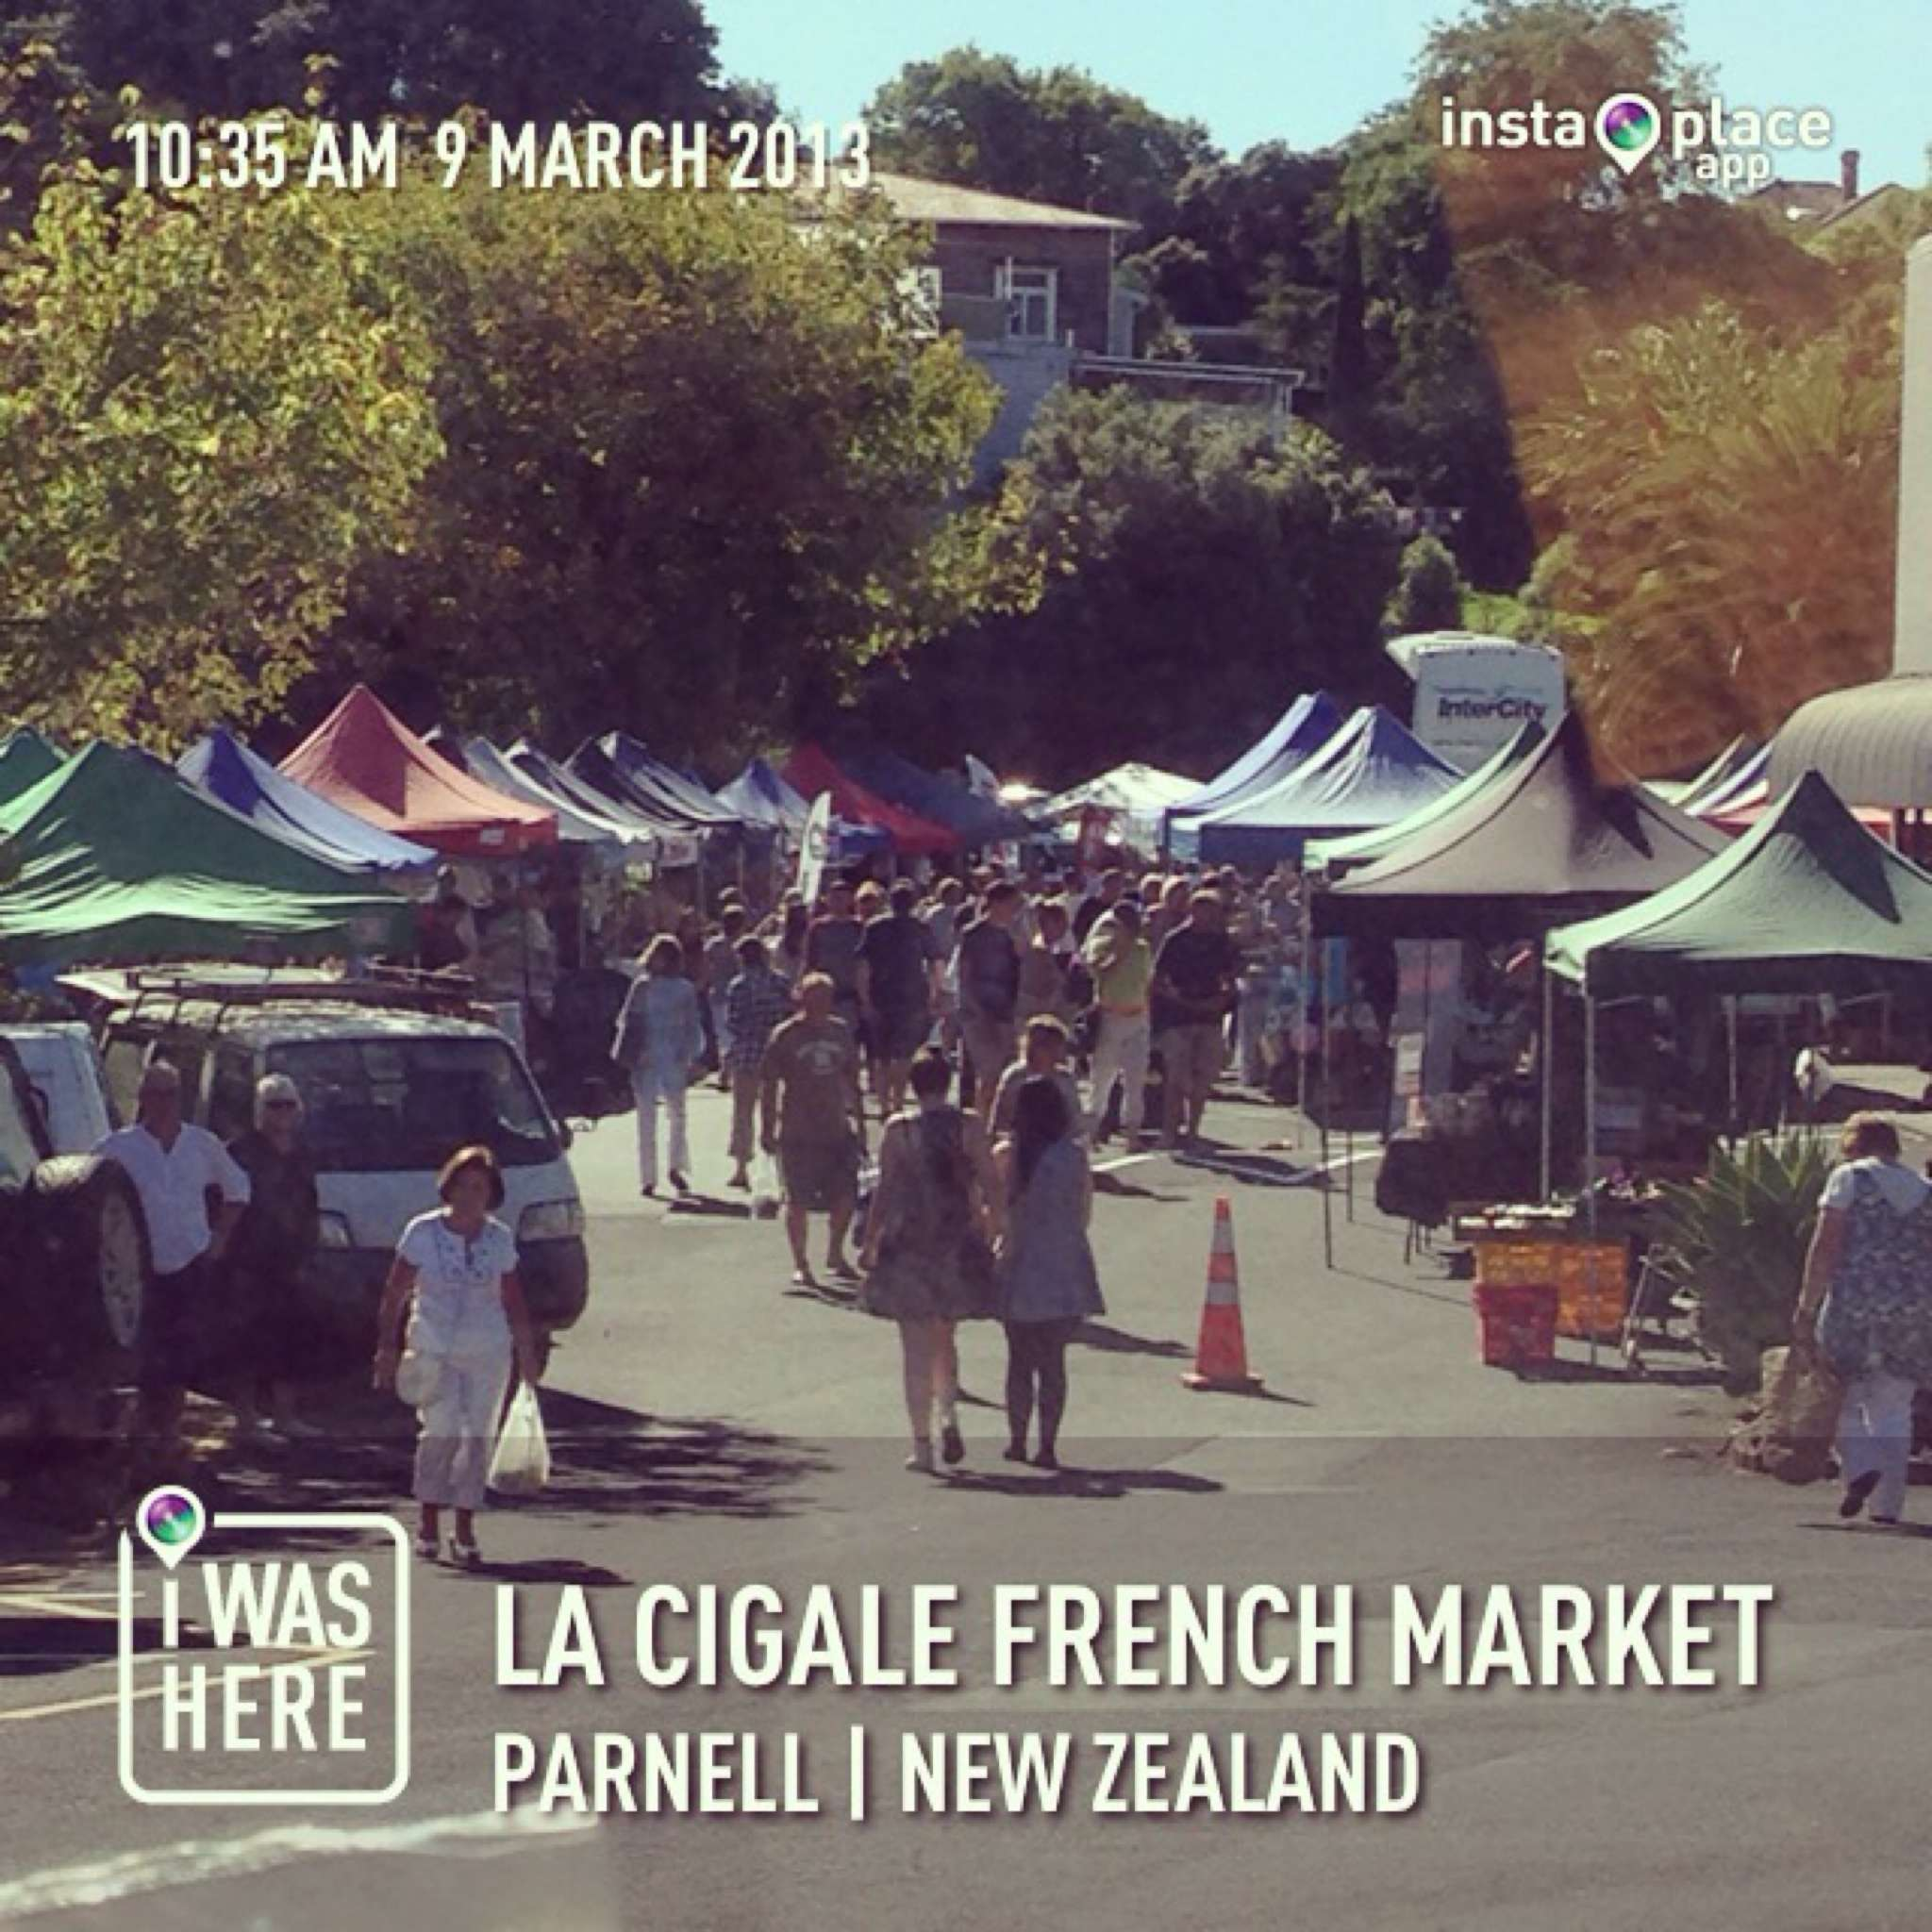 La Cigale French Market & Bistro